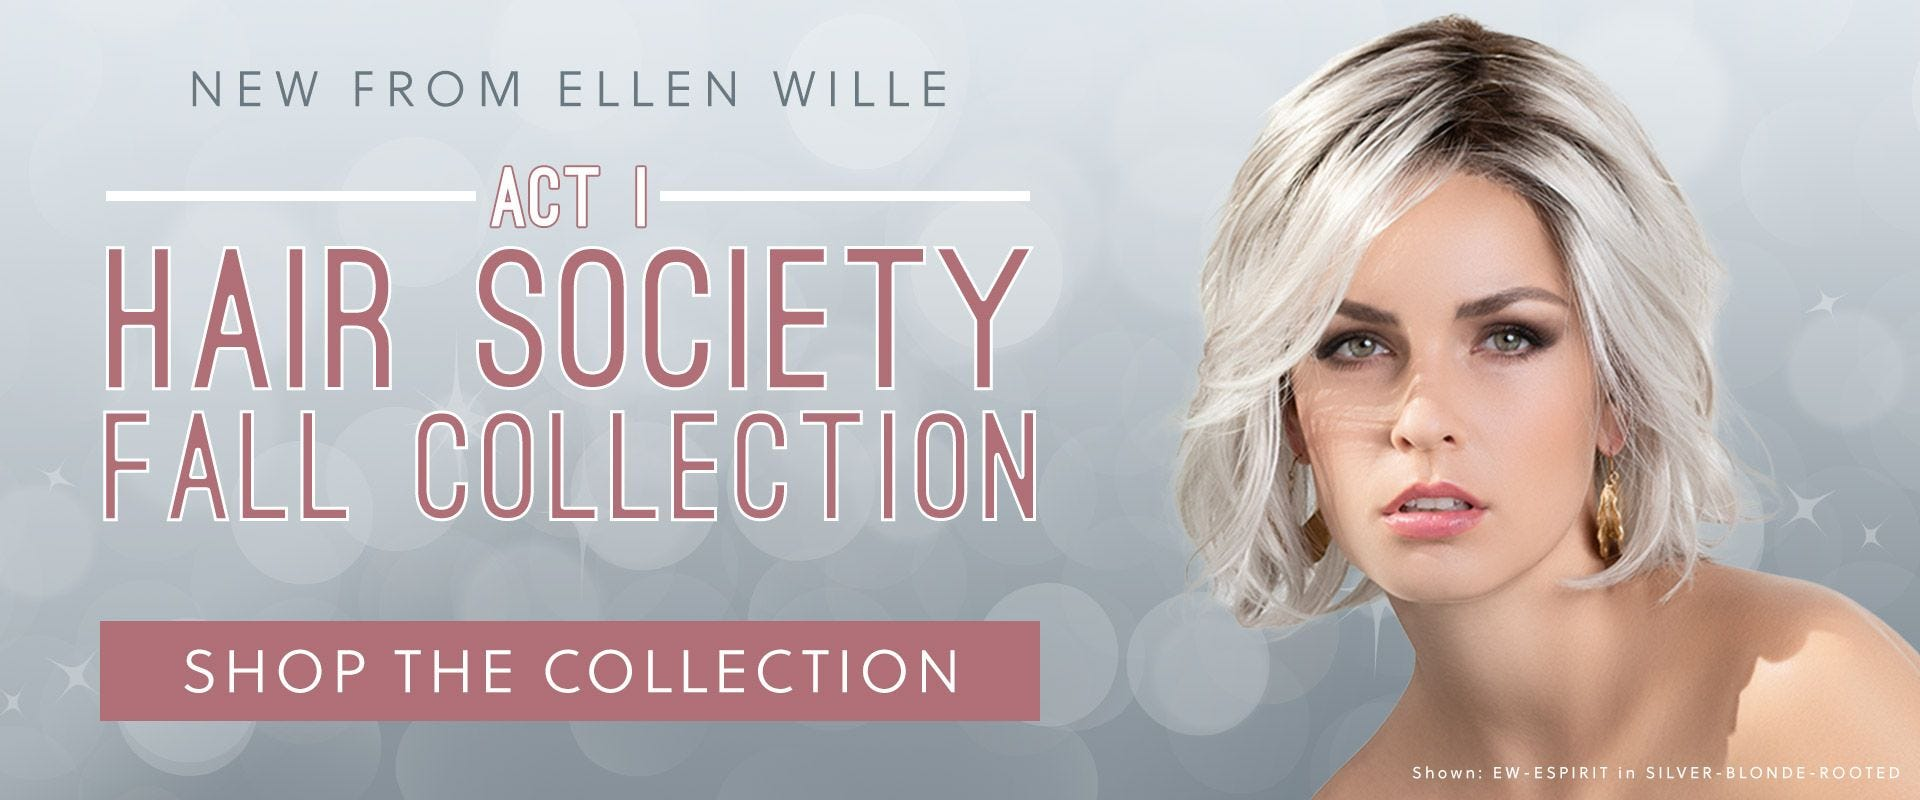 New Styles From Ellen Wille Have Arrived - Shop Now